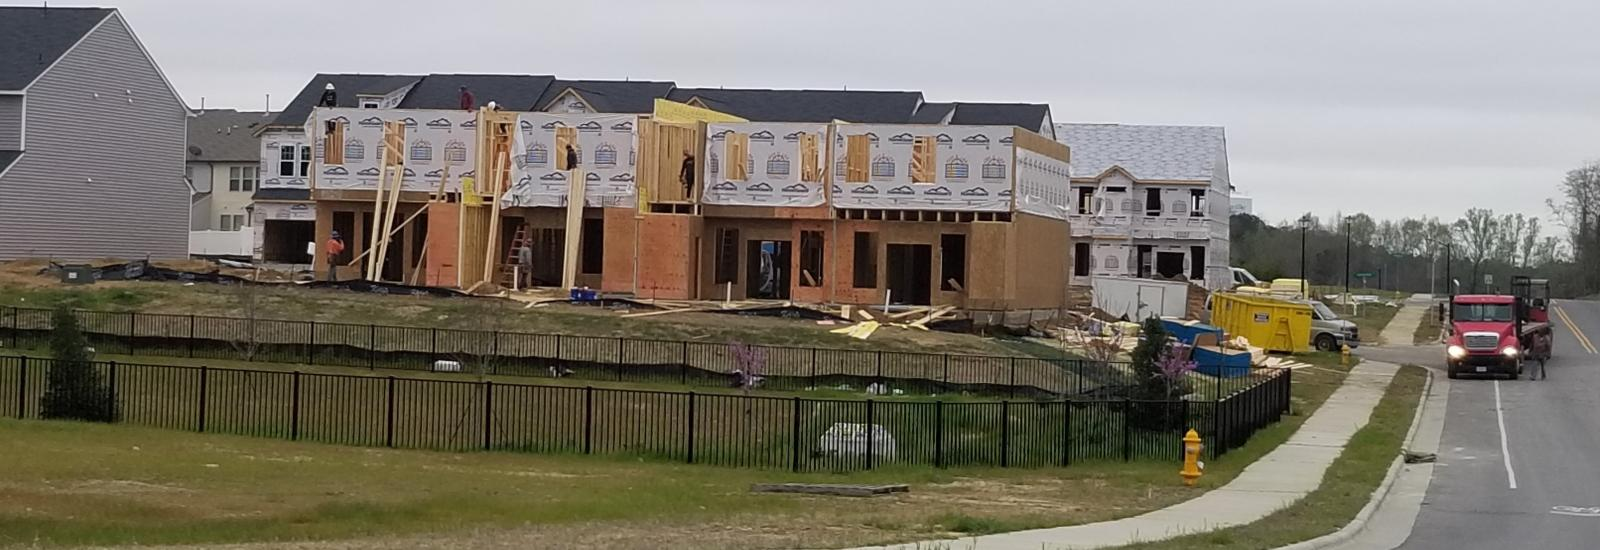 Residential Townhouse Construction